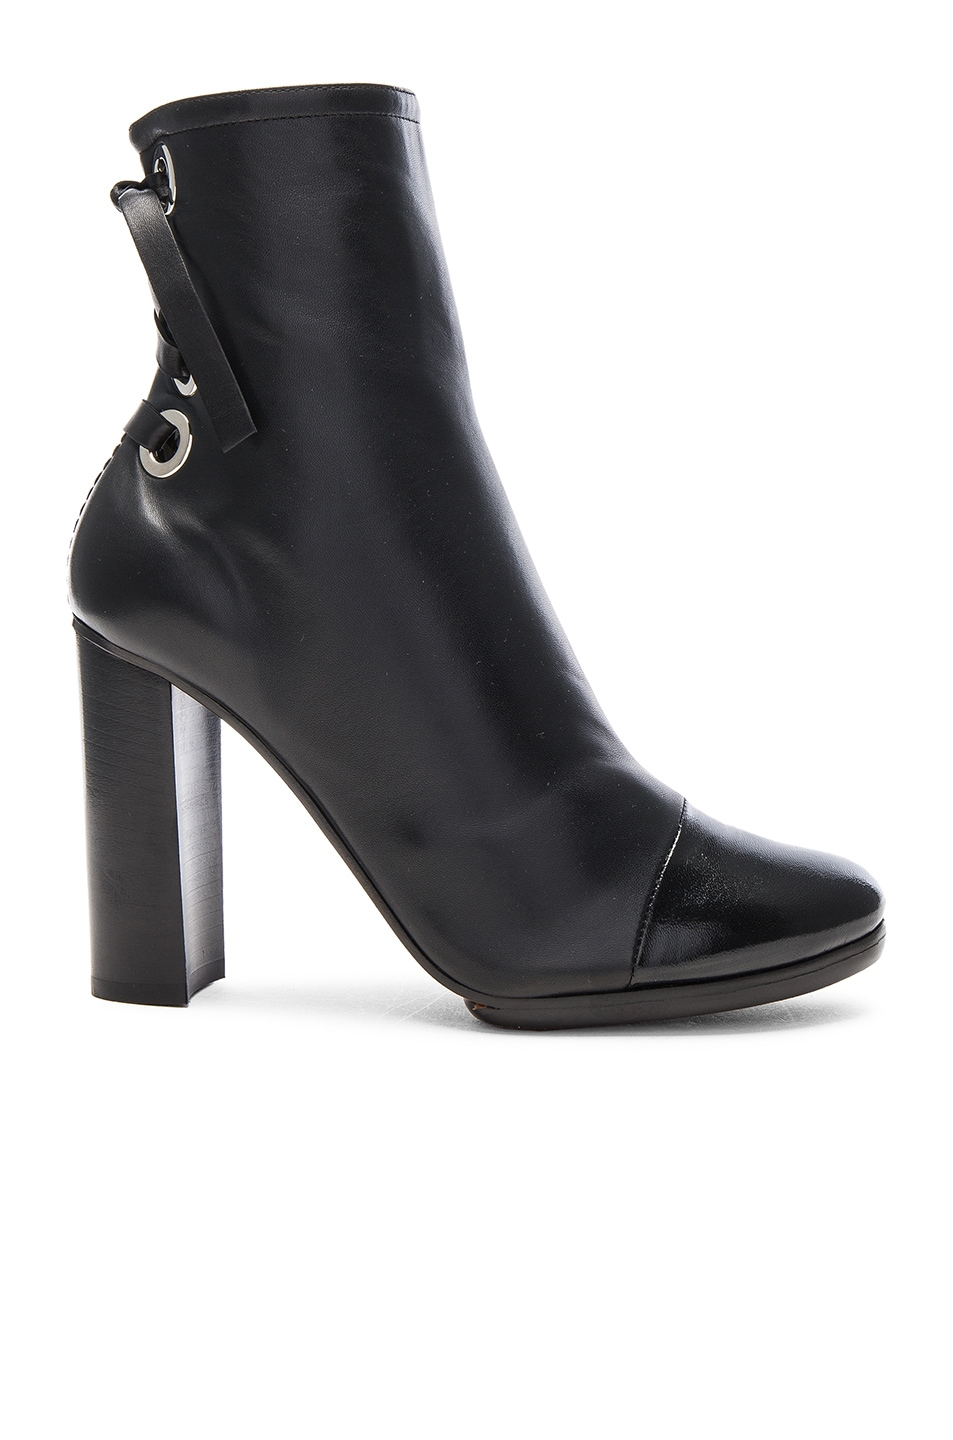 Image 1 of Proenza Schouler Platform Leather Booties in Black